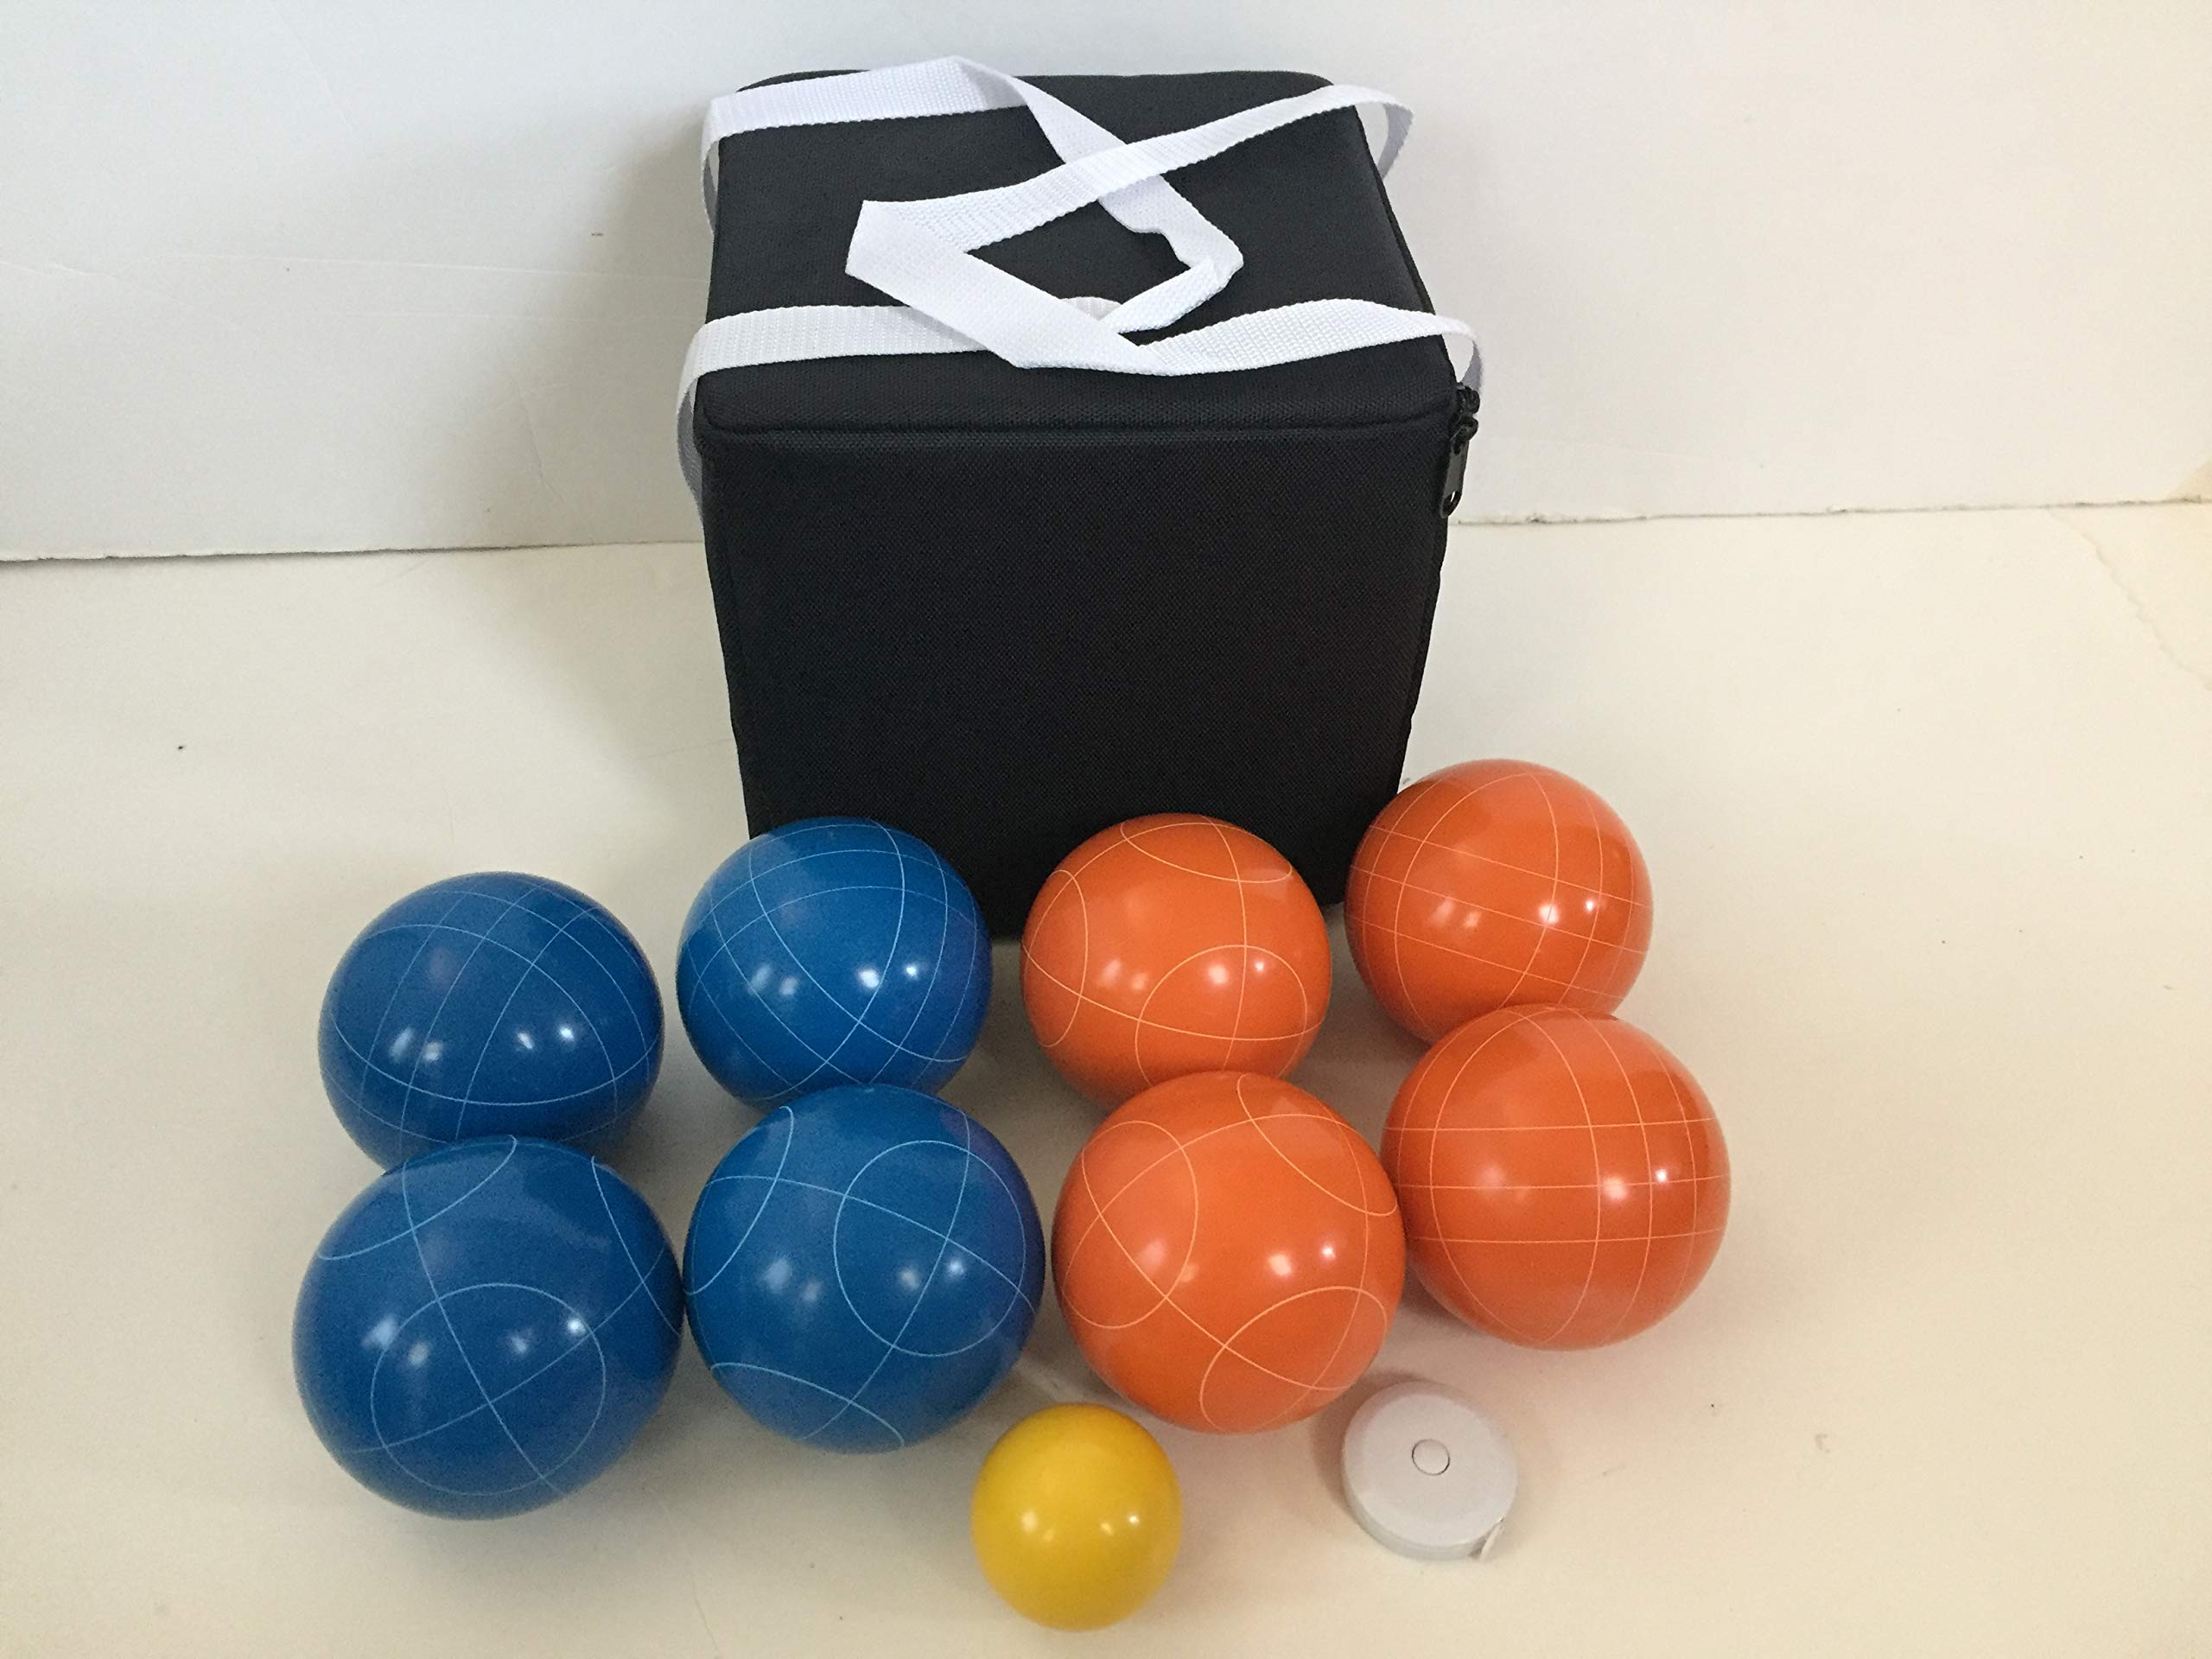 New Listing - (15 of 28) Unique Bocce Sets - 107mm with Orange and Blue Balls, Black Bag by BuyBocceBalls